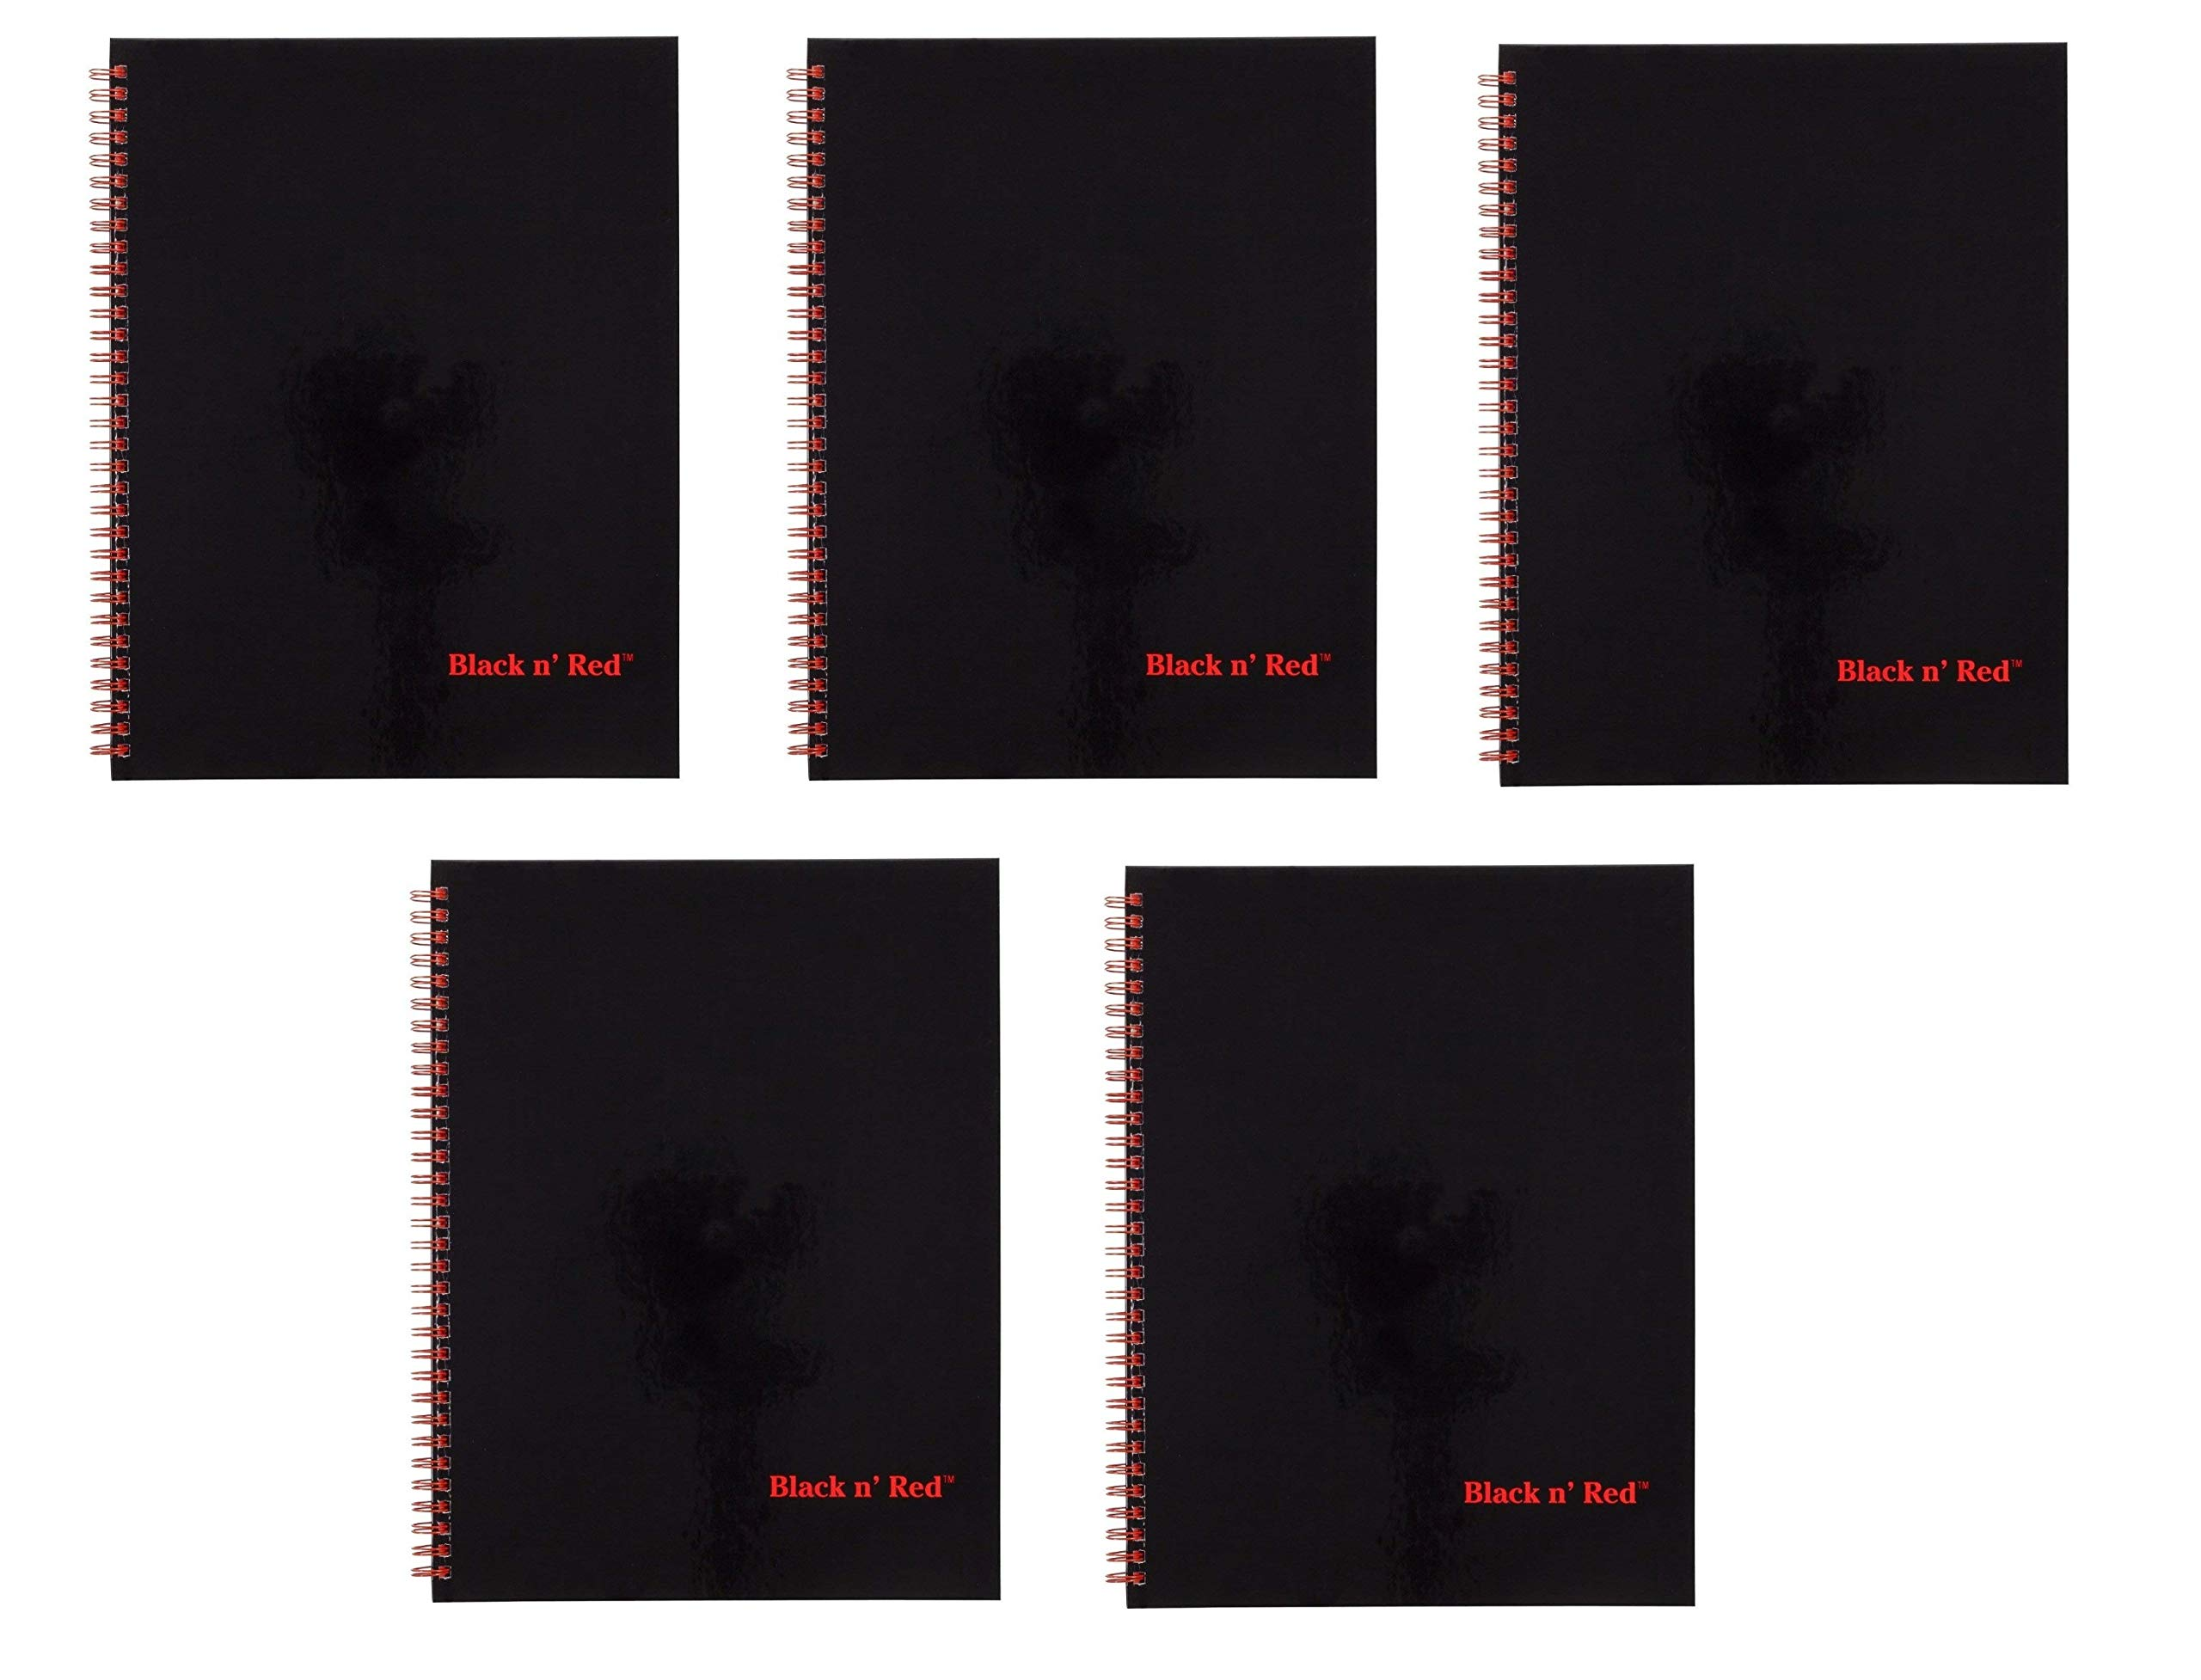 Black n' Red Twin Wire Hardcover Notebook, 11'' x 8-1/2'', Black/Red, 70 Ruled Sheets, Sold as 5 Pack (K67030) by Black n' Red